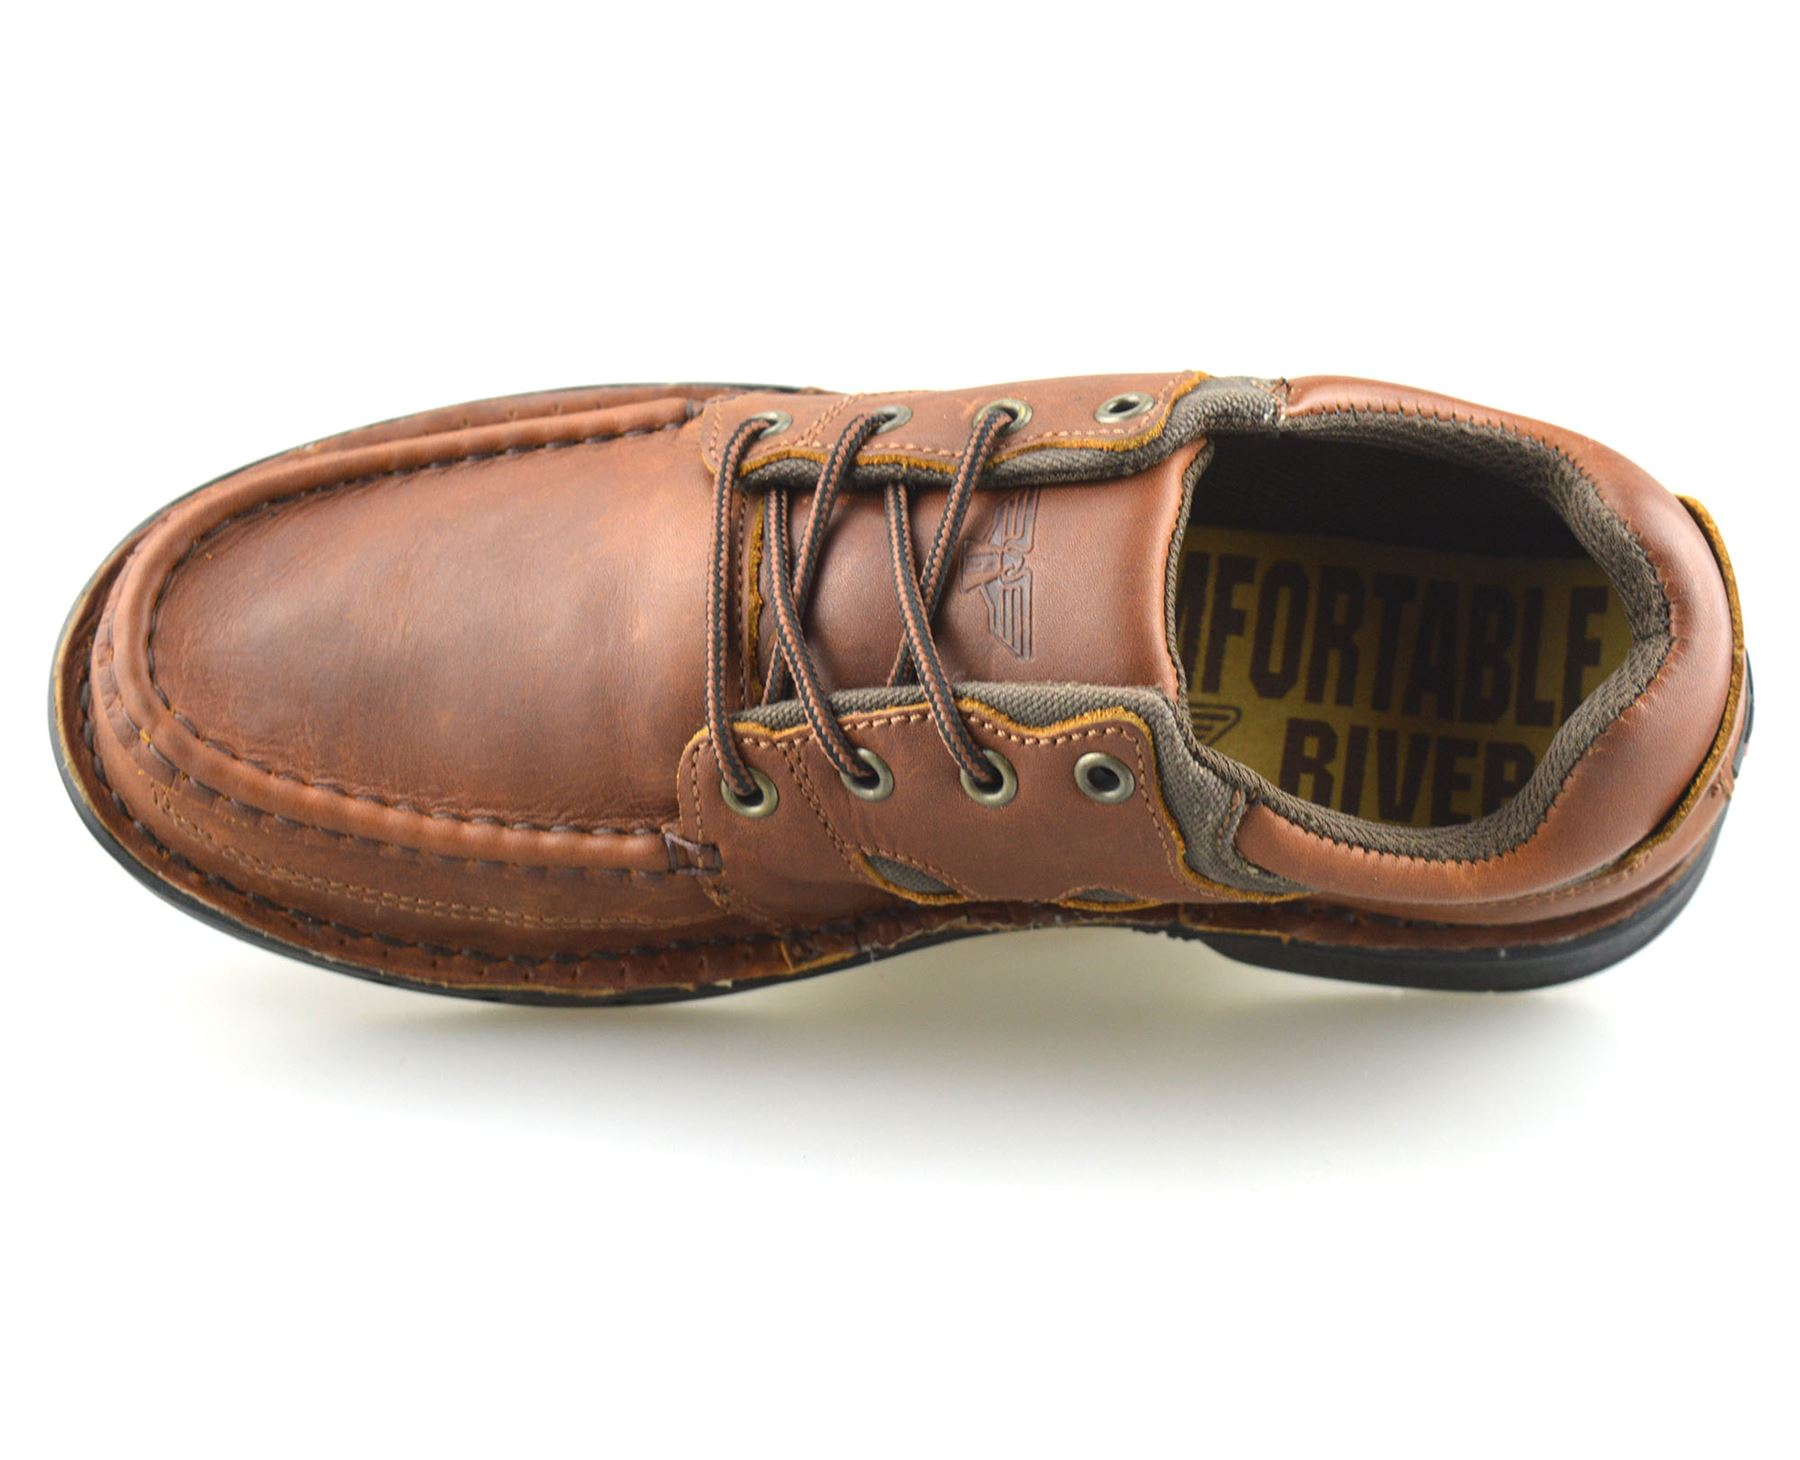 Mens-Leather-Casual-Smart-Lace-Up-Walking-Work-Moccasin-Driving-Boat-Shoes-Size thumbnail 12